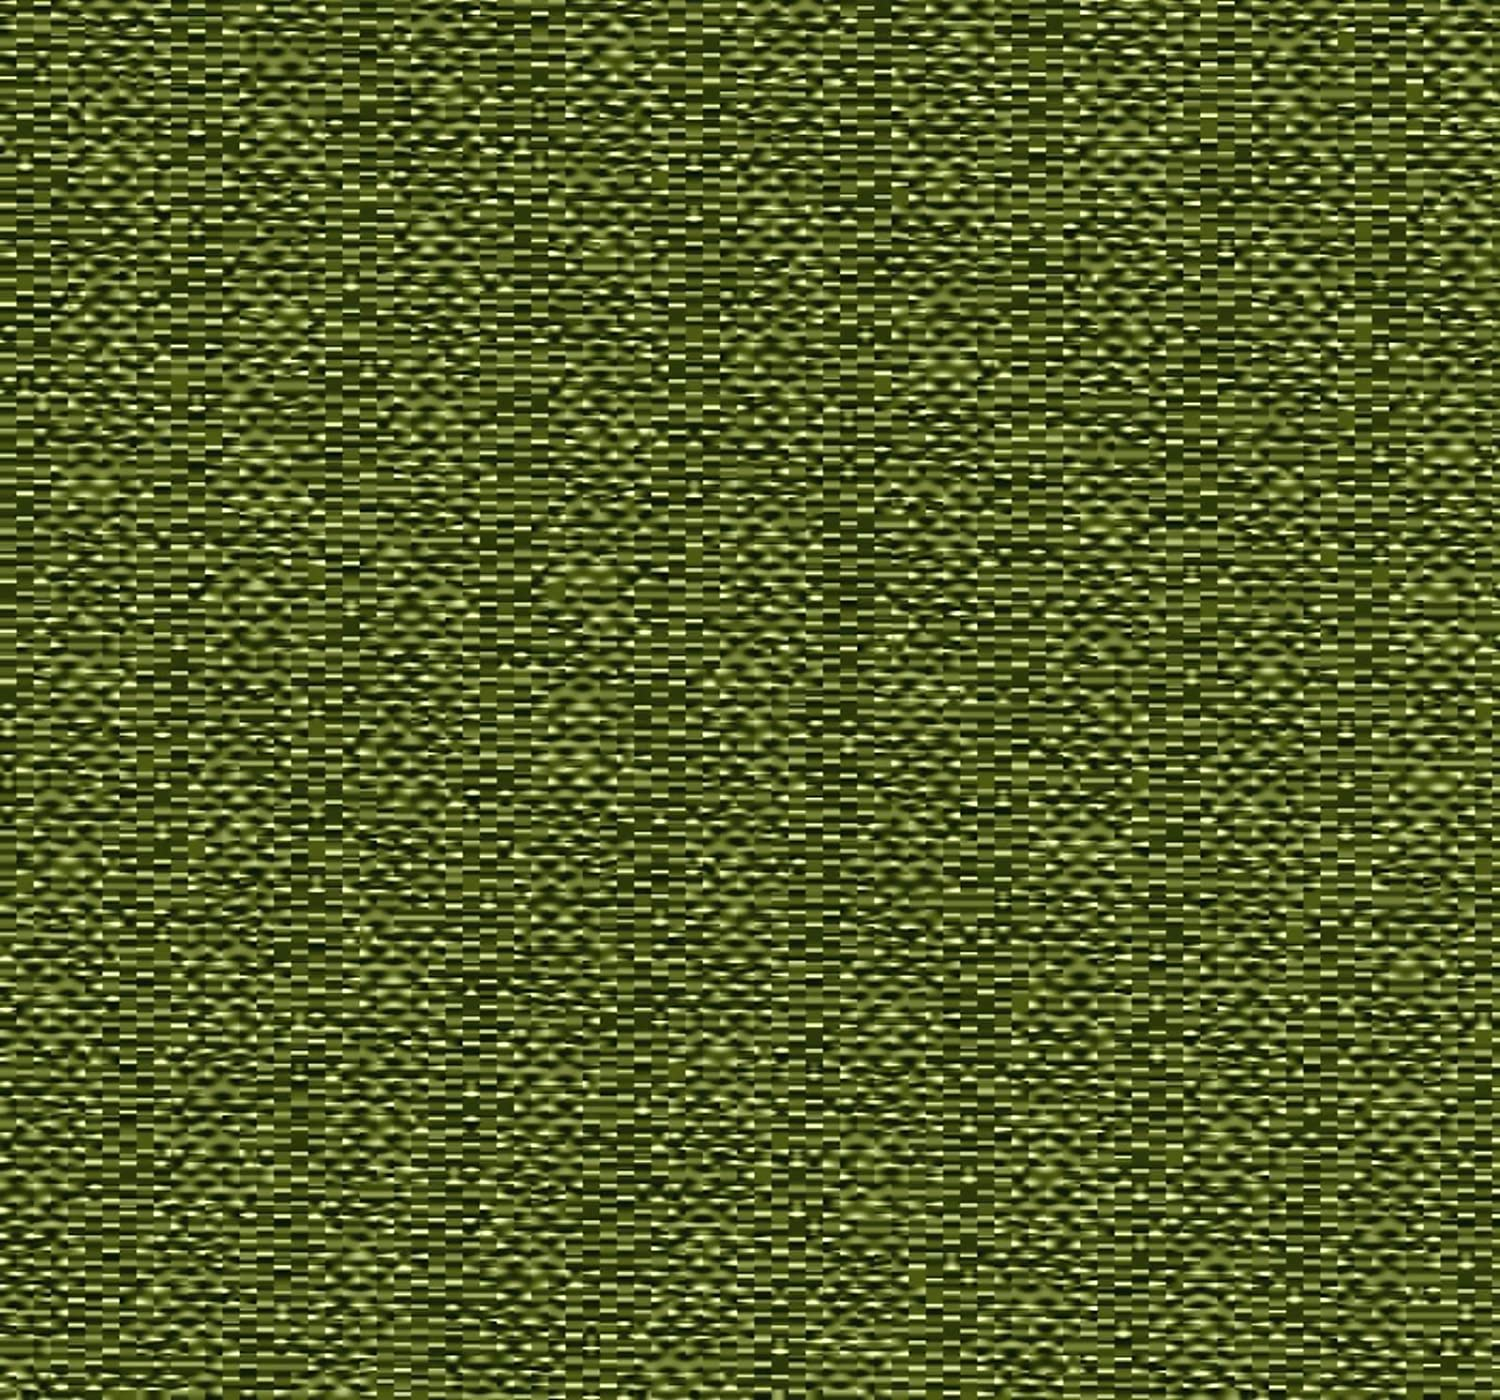 PLAIN OLIVE GREEN Zippy Steamer Chair Lounger Cushion Waterproof Fabric For Home and Garden Furniture